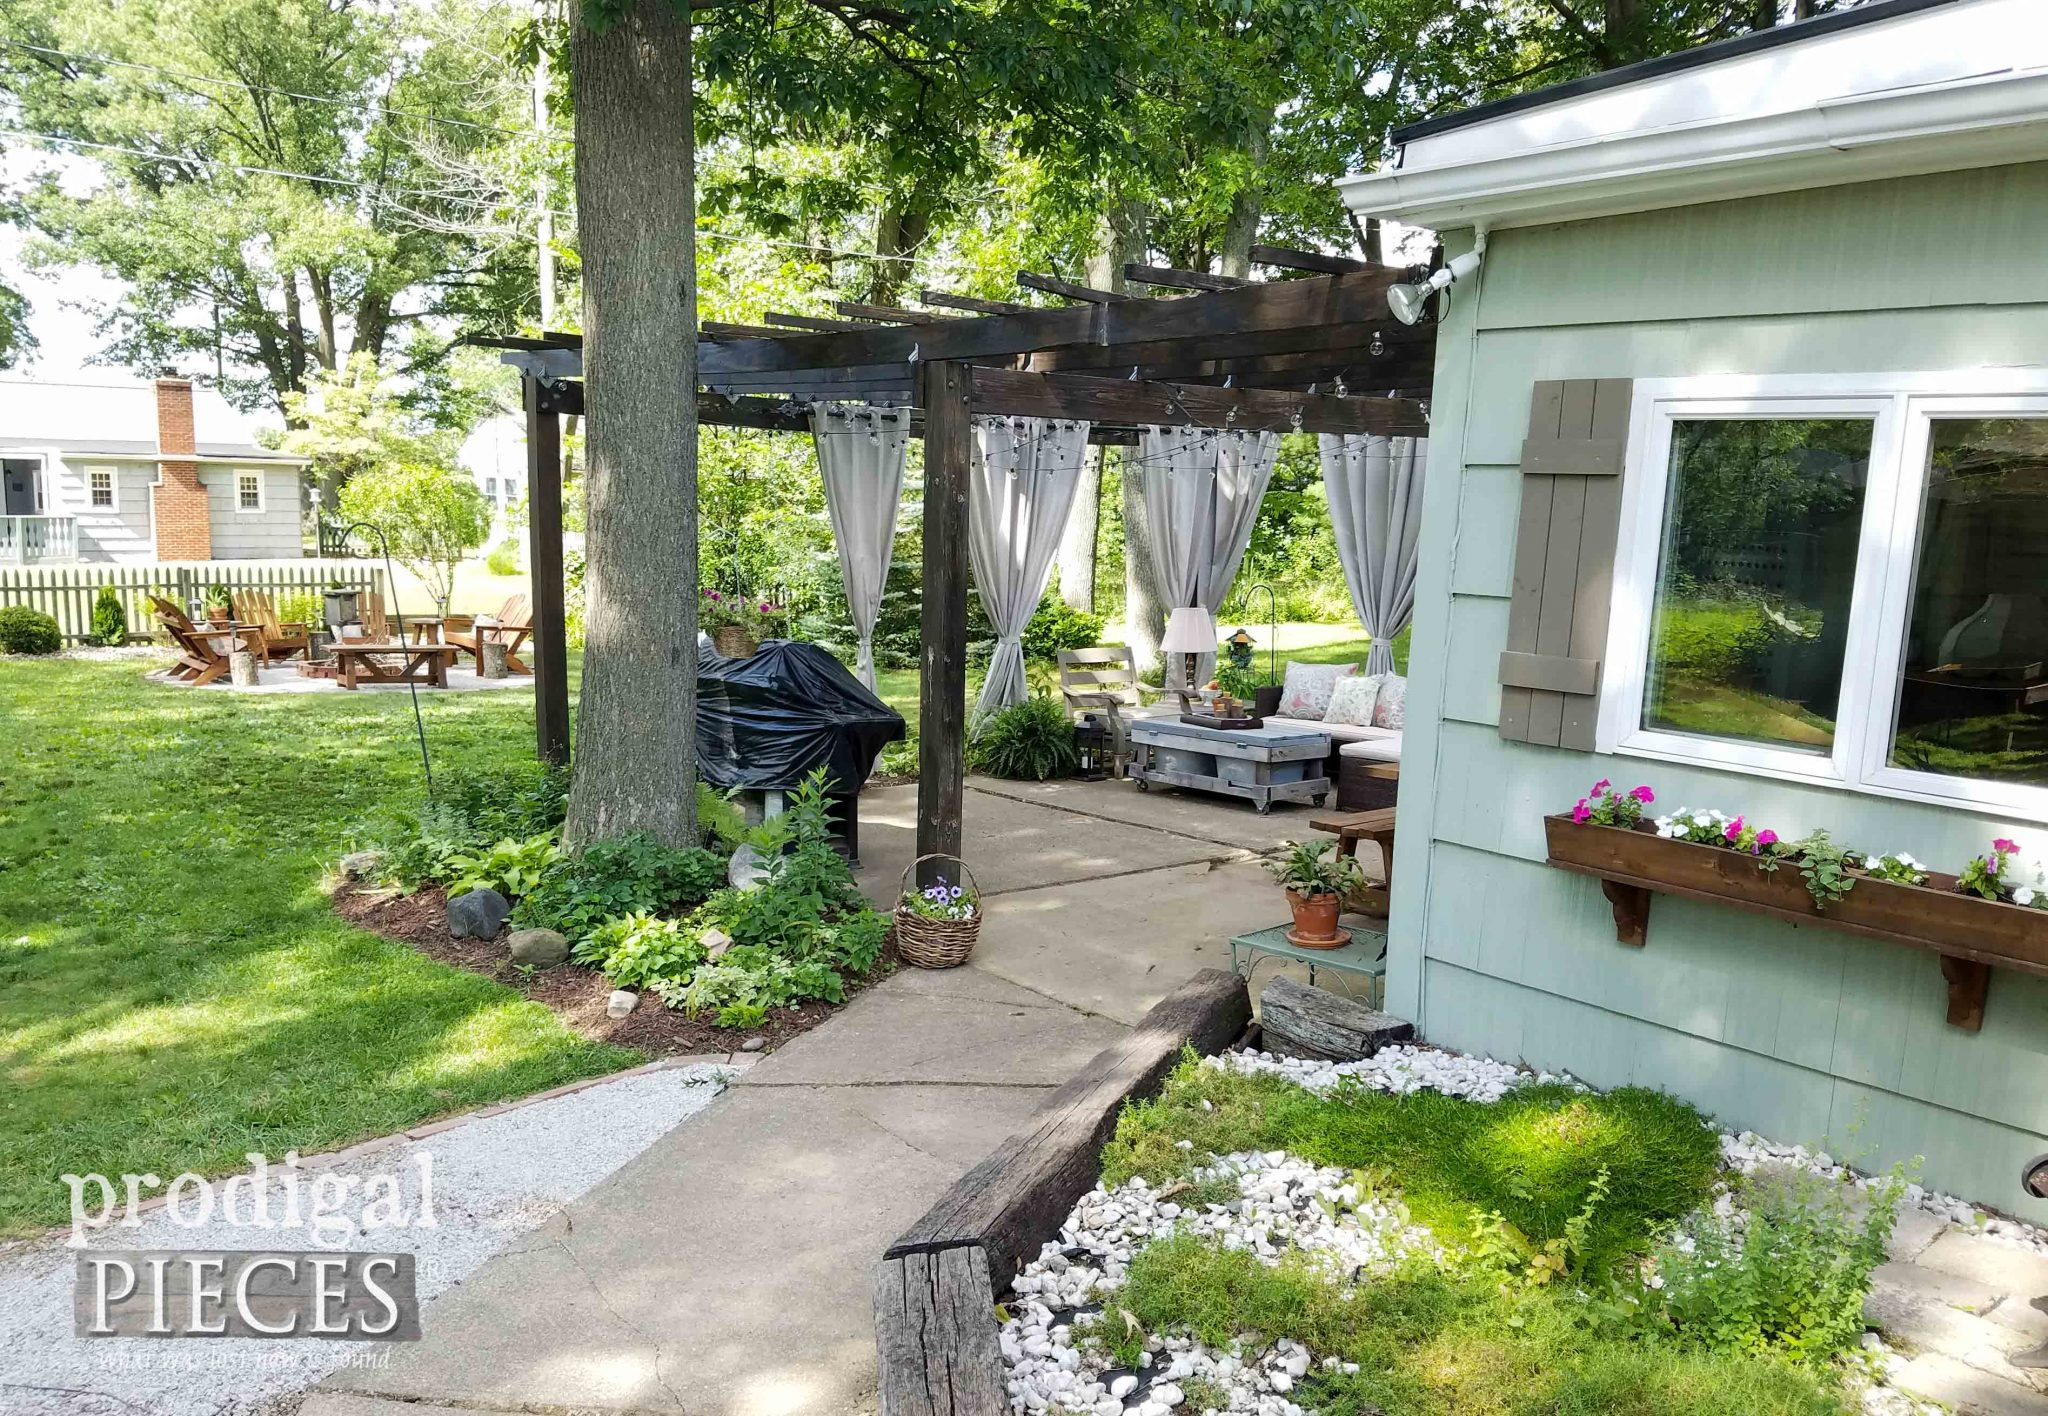 Outdoor Back Yard Design by Prodigal Pieces | prodigalpieces.com